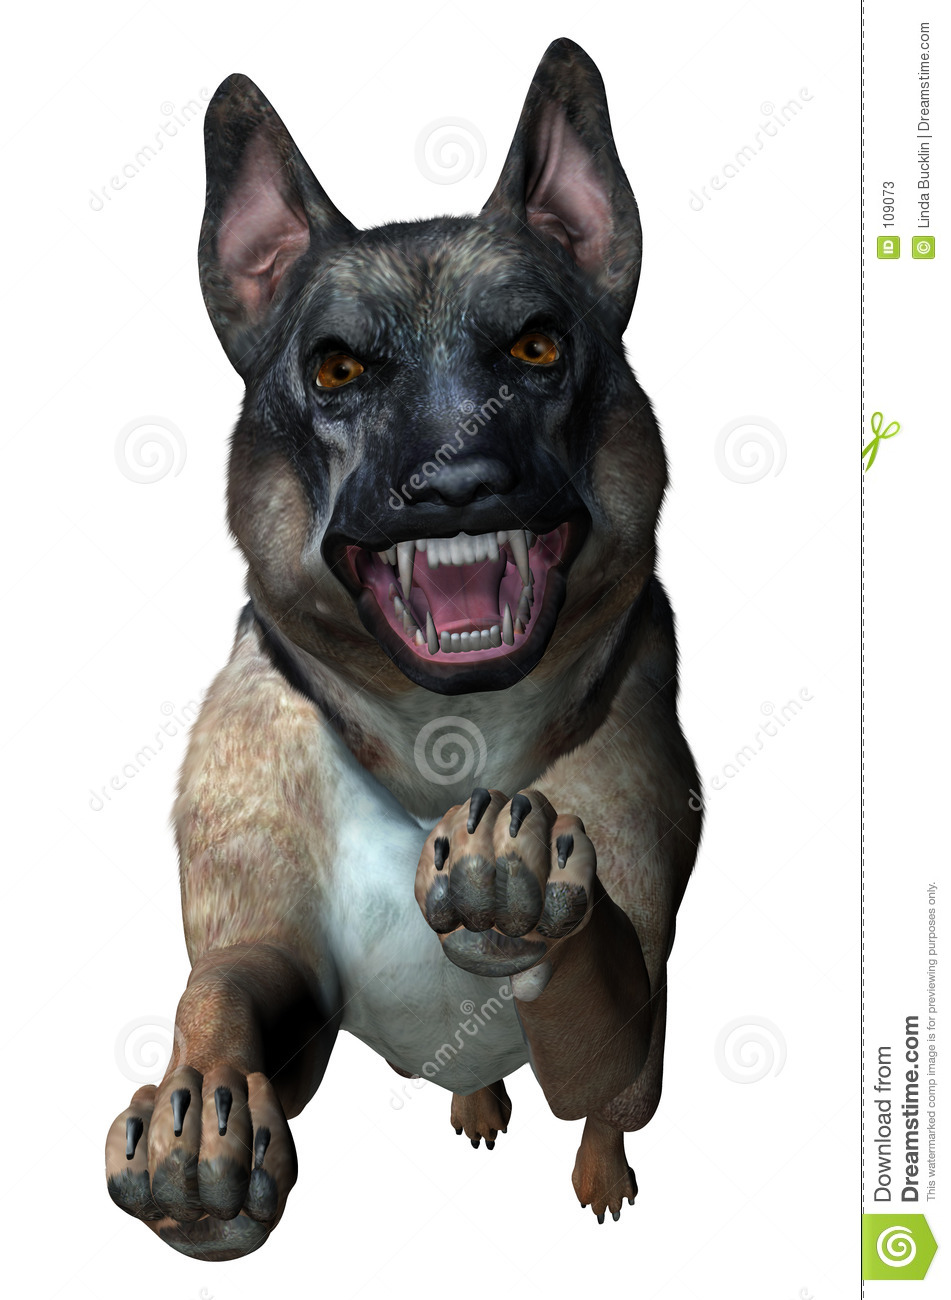 German Shepherd Attacks - includes clipping path